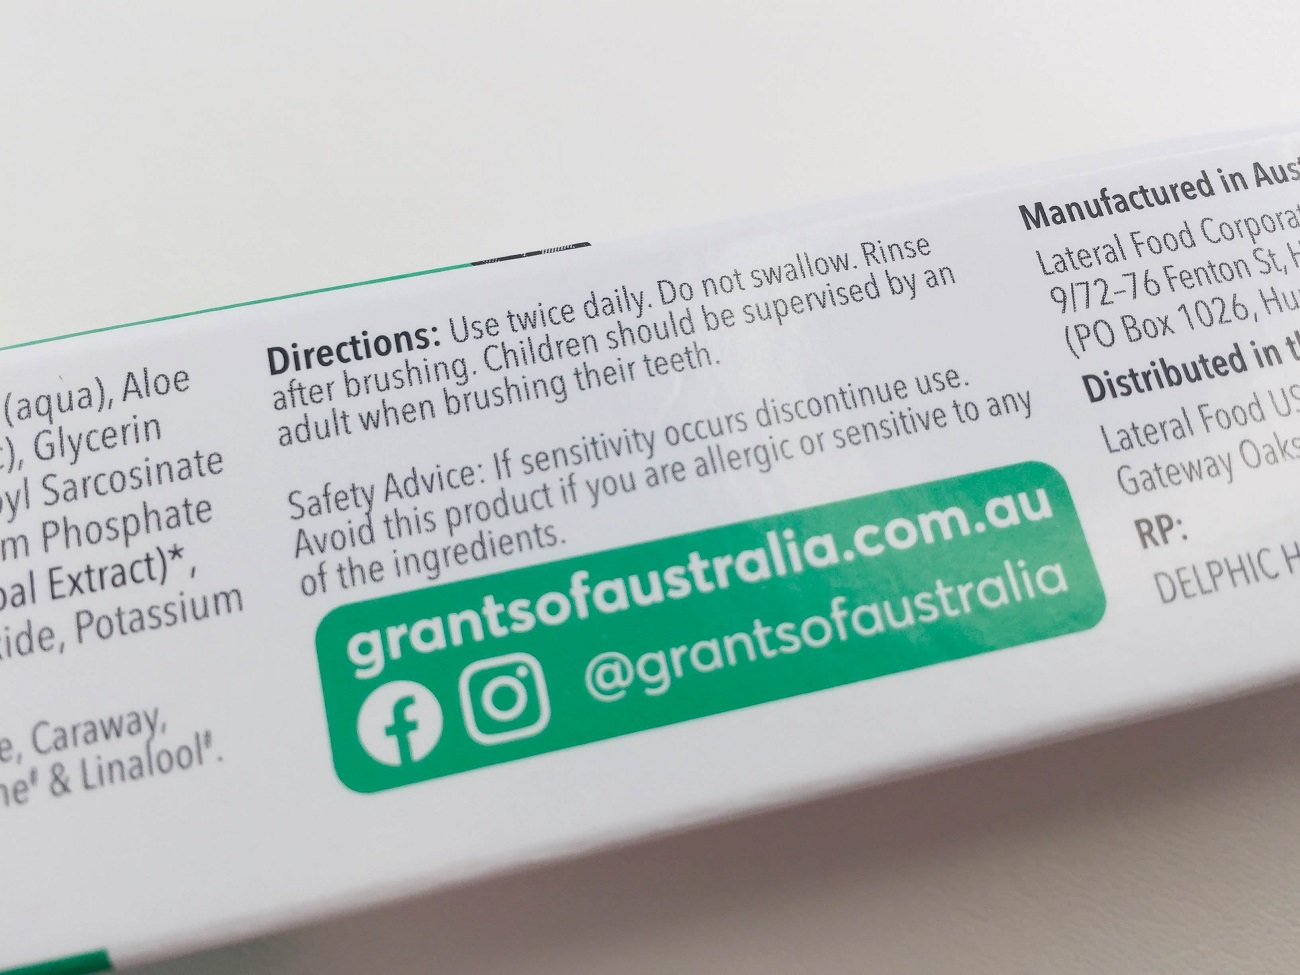 Directions for use with Grants Mild Mint toothpaste